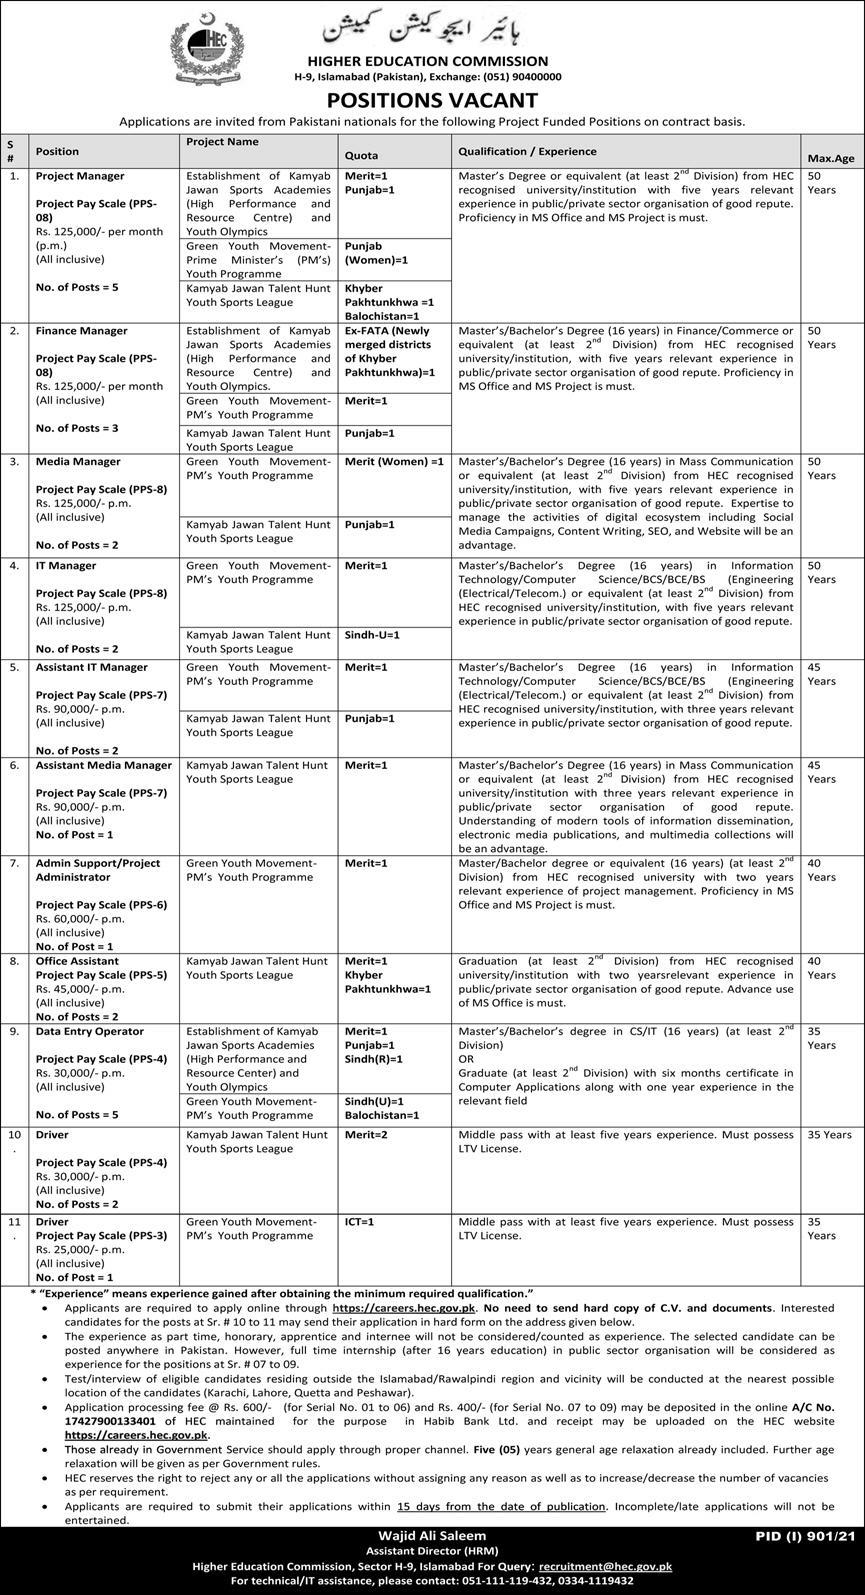 Jobs in Higher Education Commission Pakistan HEC Islamabad Aug 2021